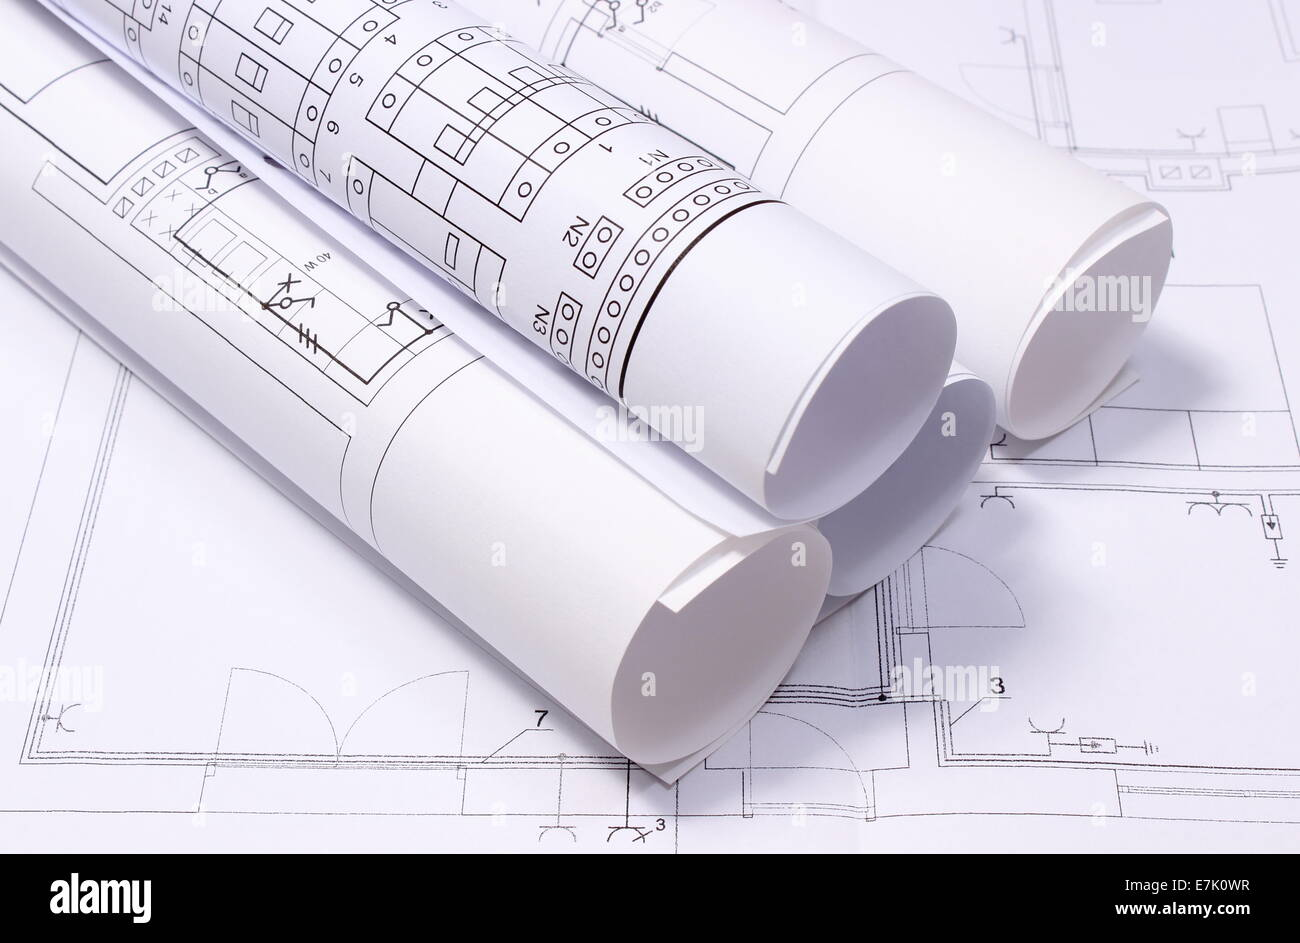 Scale Drawings Engineering Stockfotos & Scale Drawings Engineering ...